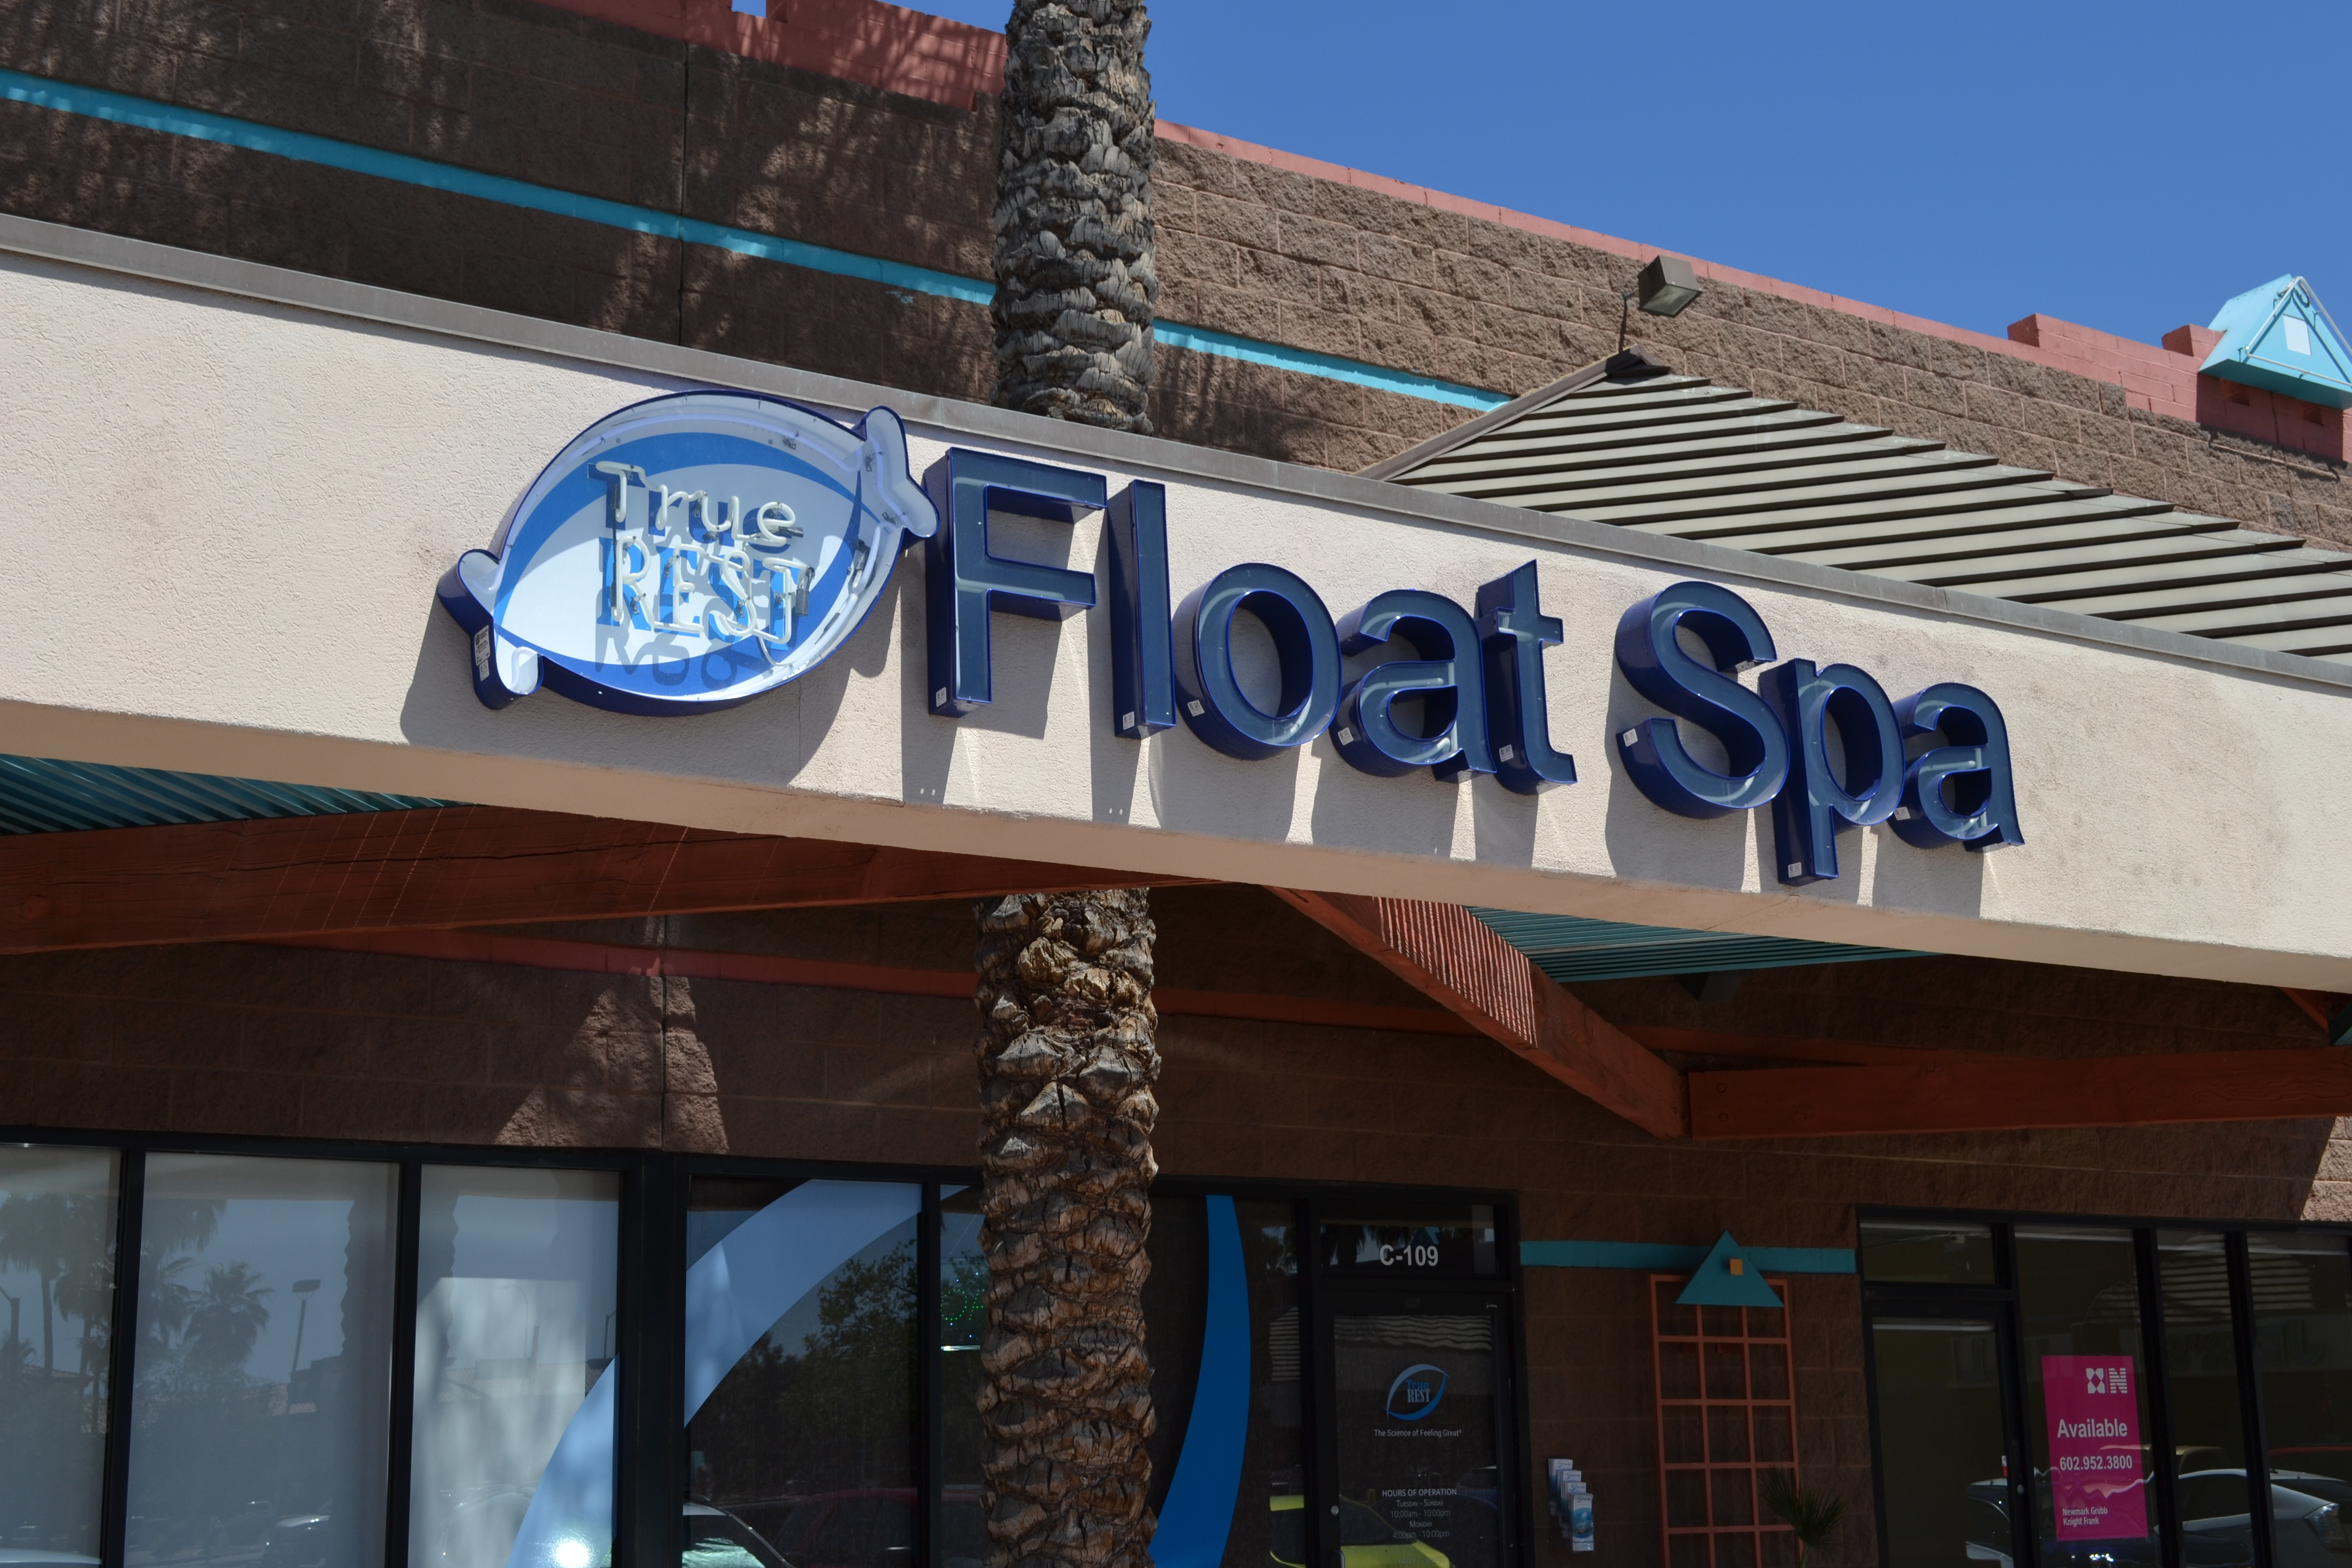 New Age Revival: True Rest Float Spa